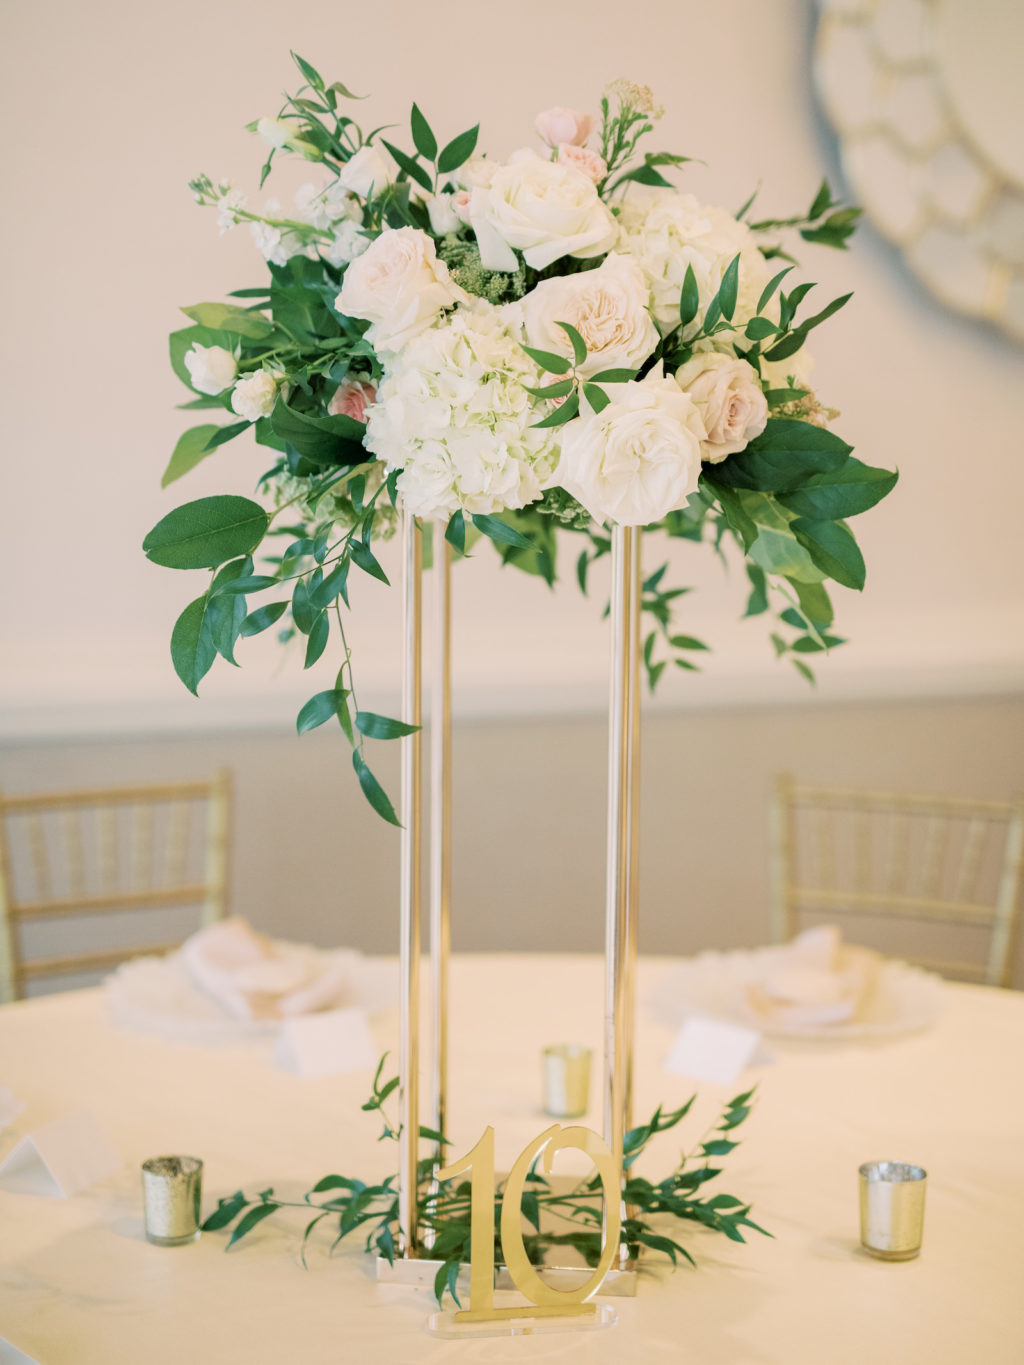 Timeless Romantic Wedding Reception Decor, Tall Gold Stand with Greenery and White, Blush Pink Roses and Hydrangeas, Gold Table Number and Votive Candles | Tampa Bay Wedding Planner Special Moments Event Planning | Wedding Rentals Kate Ryan Event Rentals